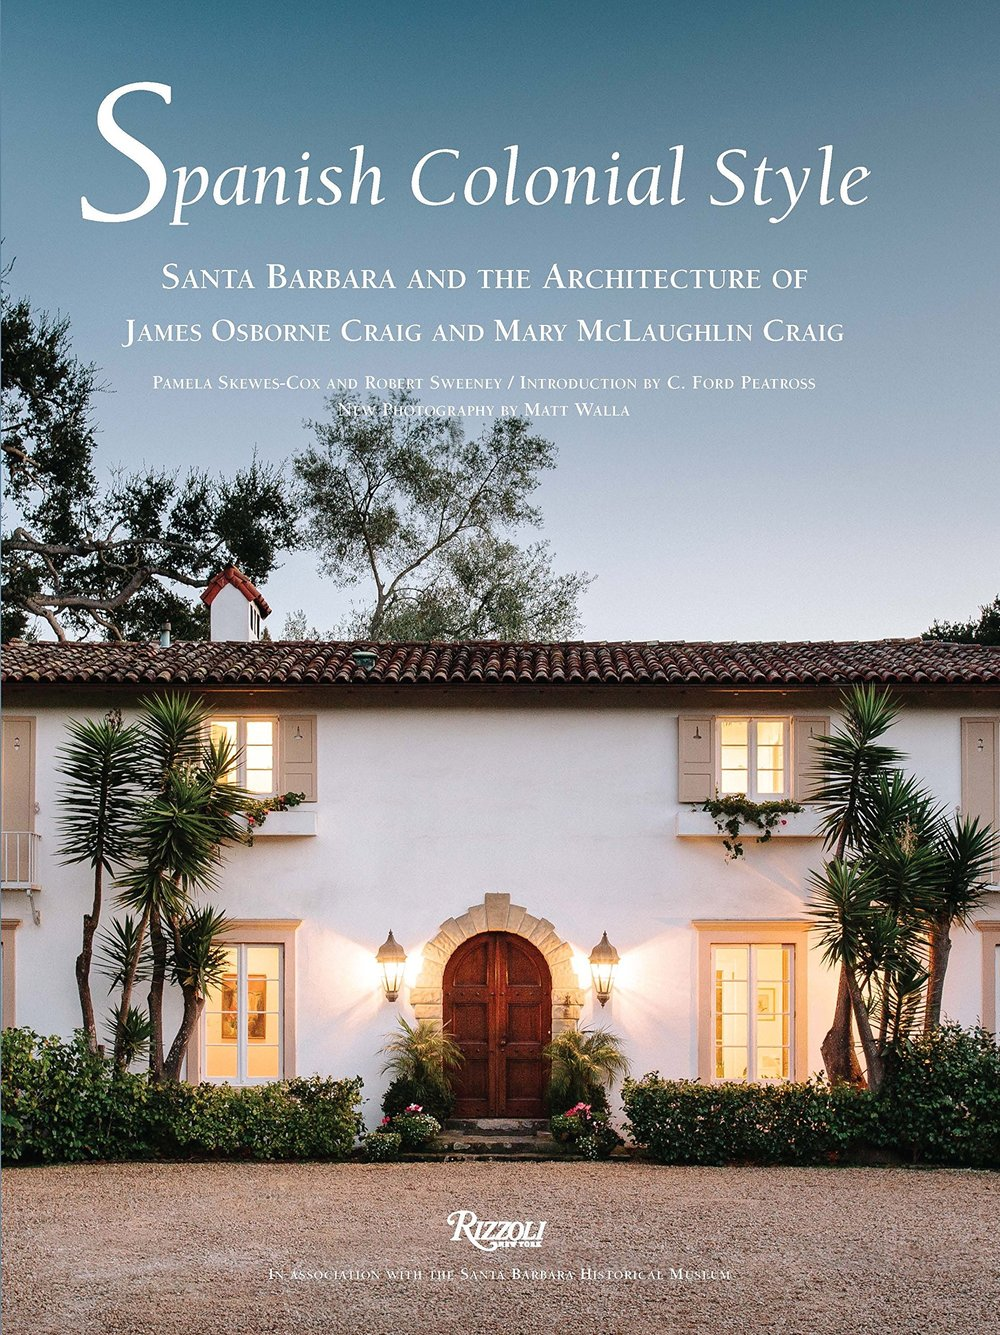 Spanish Colonial Style book cover.jpg